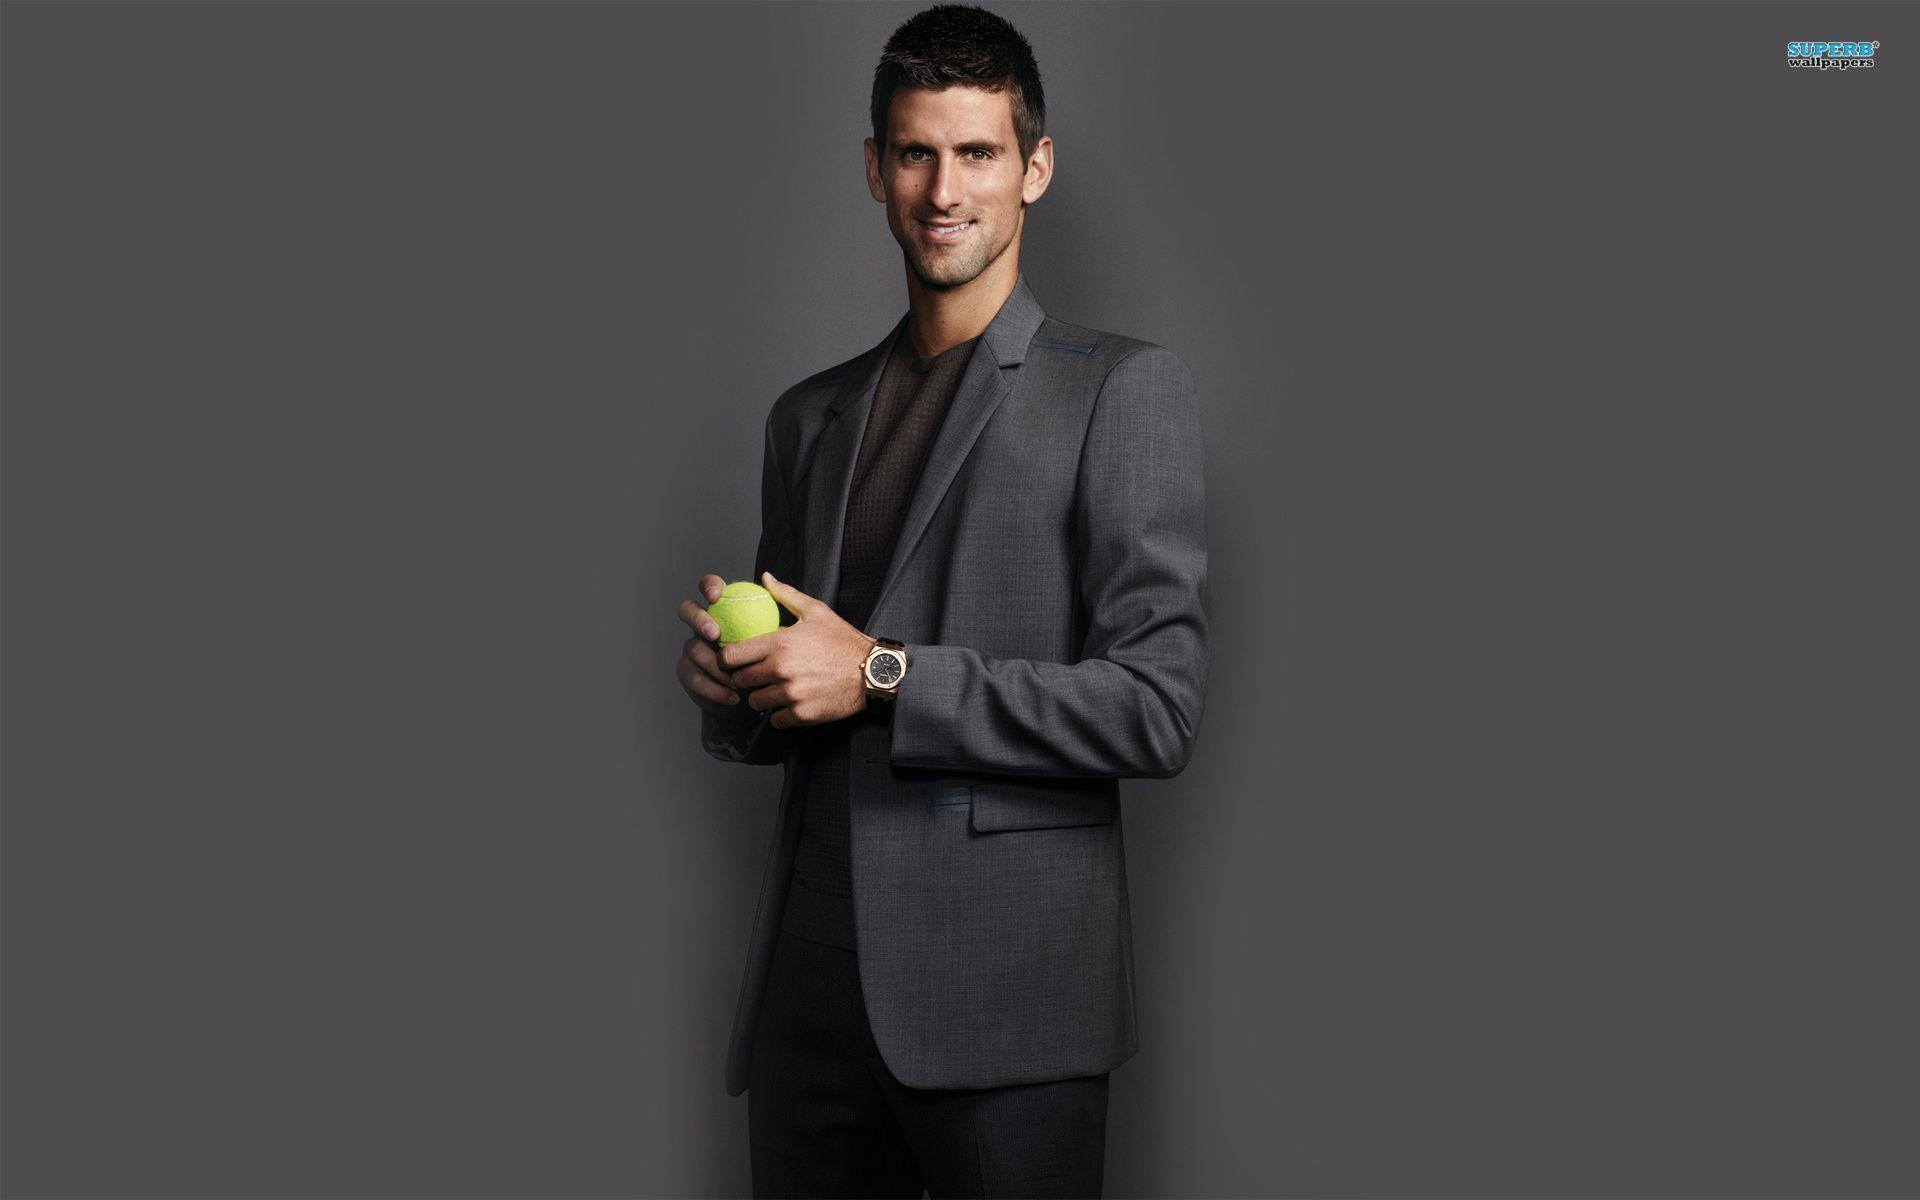 Novak Djokovic wallpaper - Sport wallpapers - #